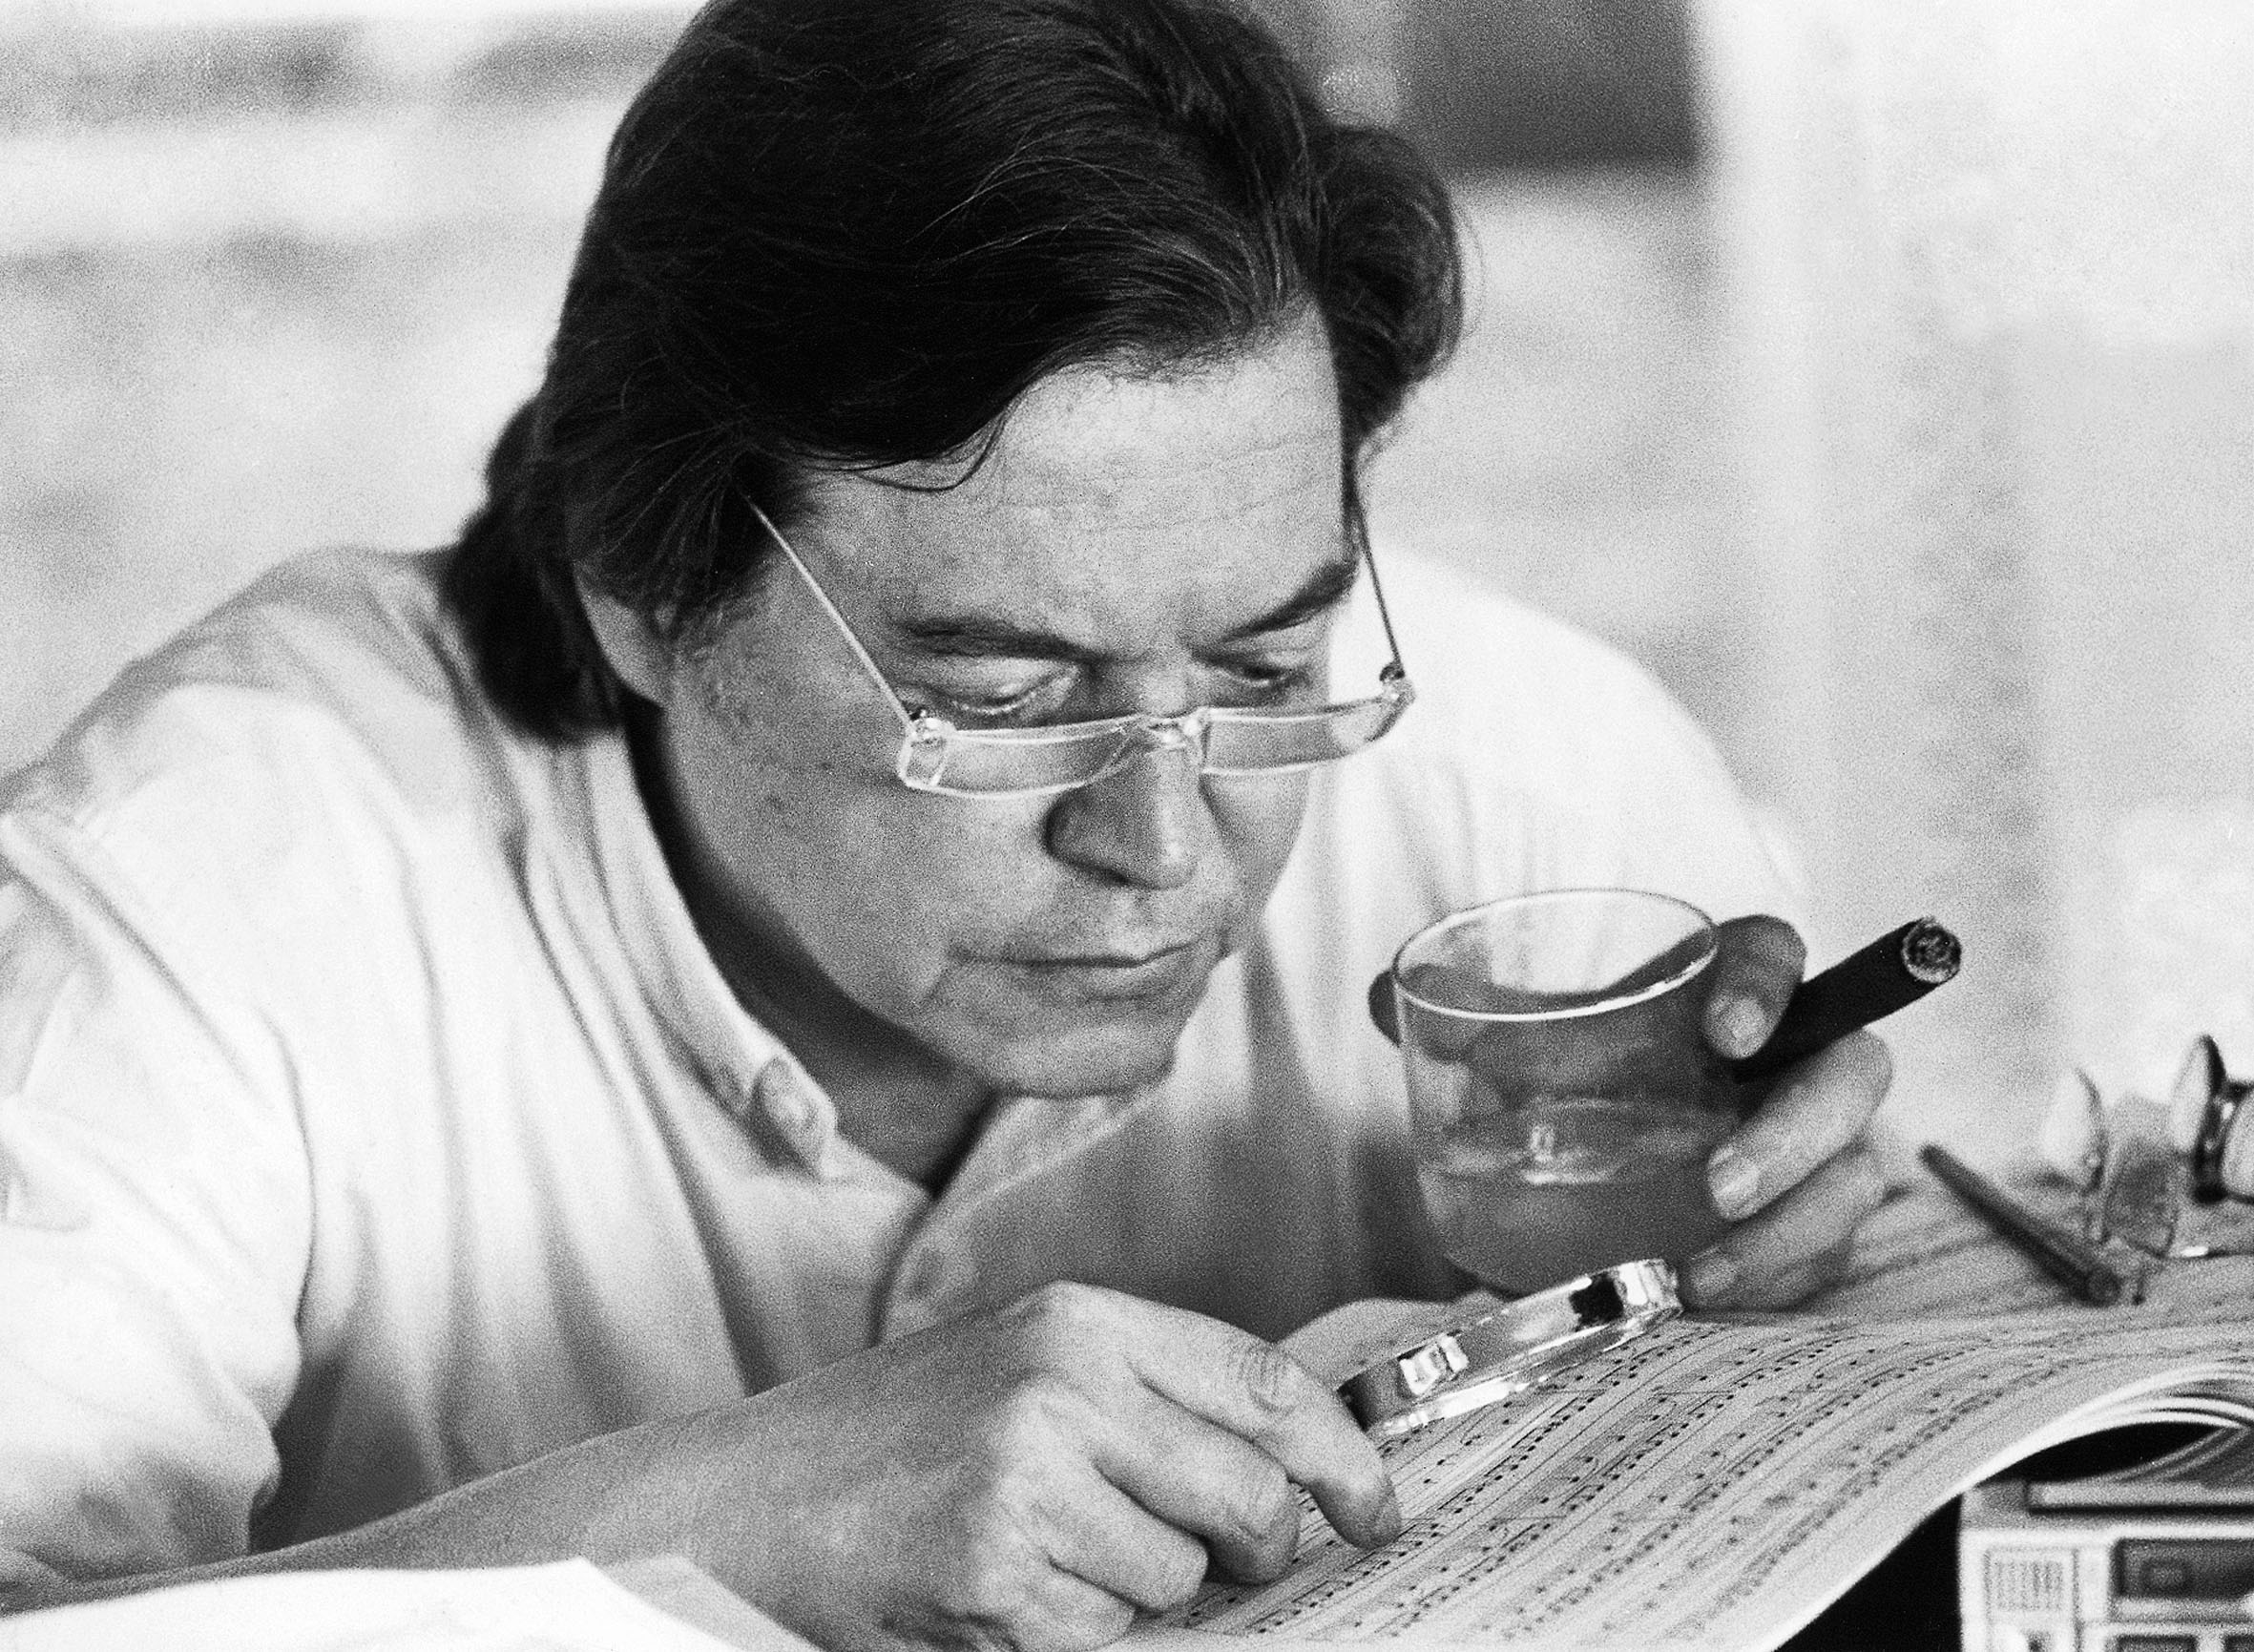 The Late Antonio Carlos Jobim